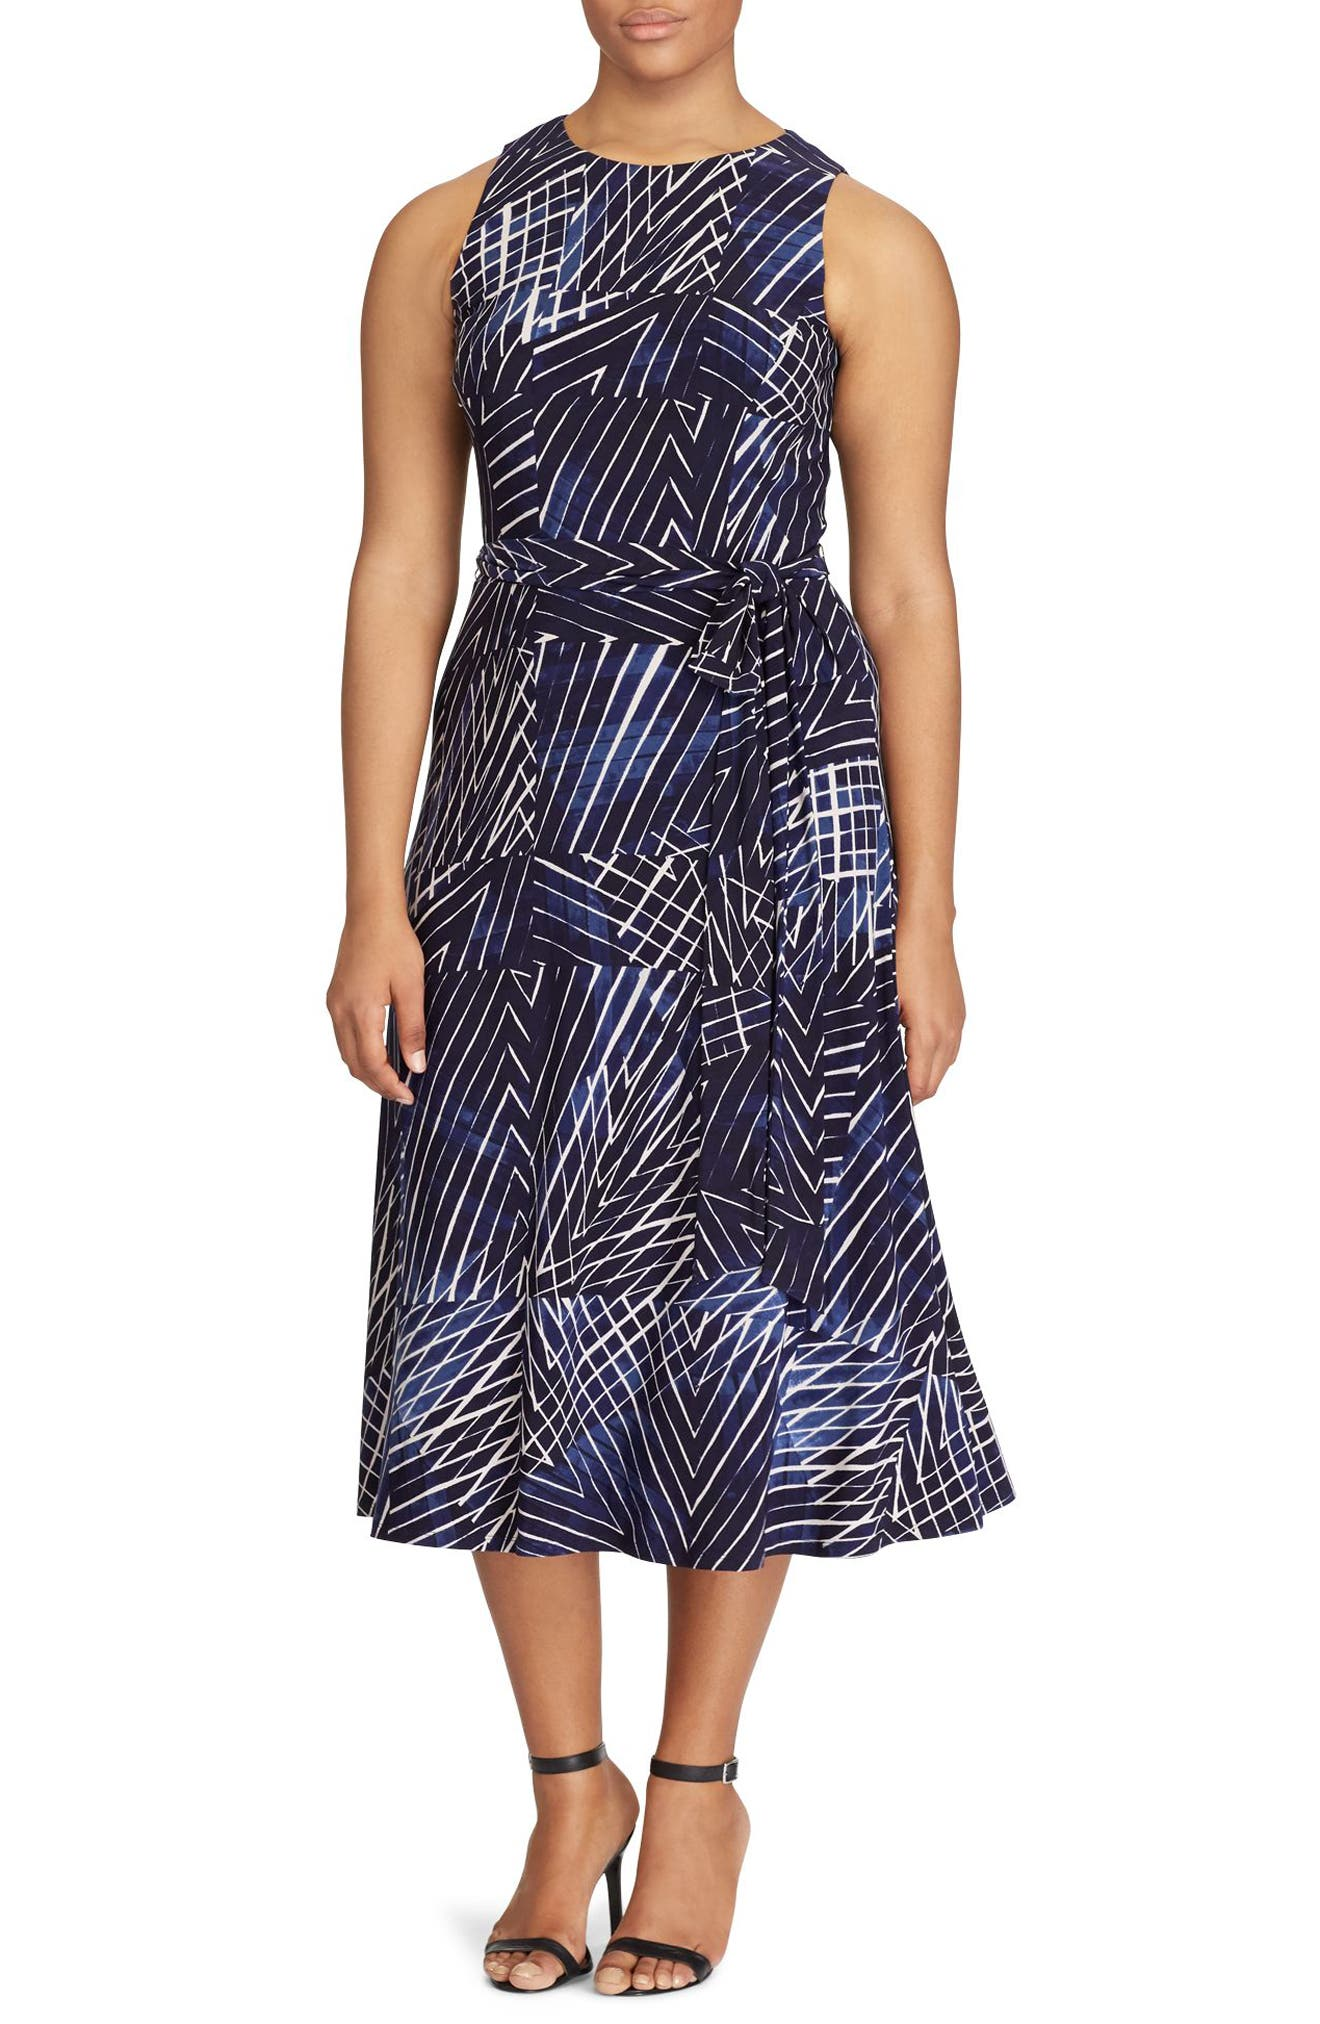 Alternate Image 1 Selected - Lauren Ralph Lauren Print Jersey Fit & Flare Dress (Plus Size)